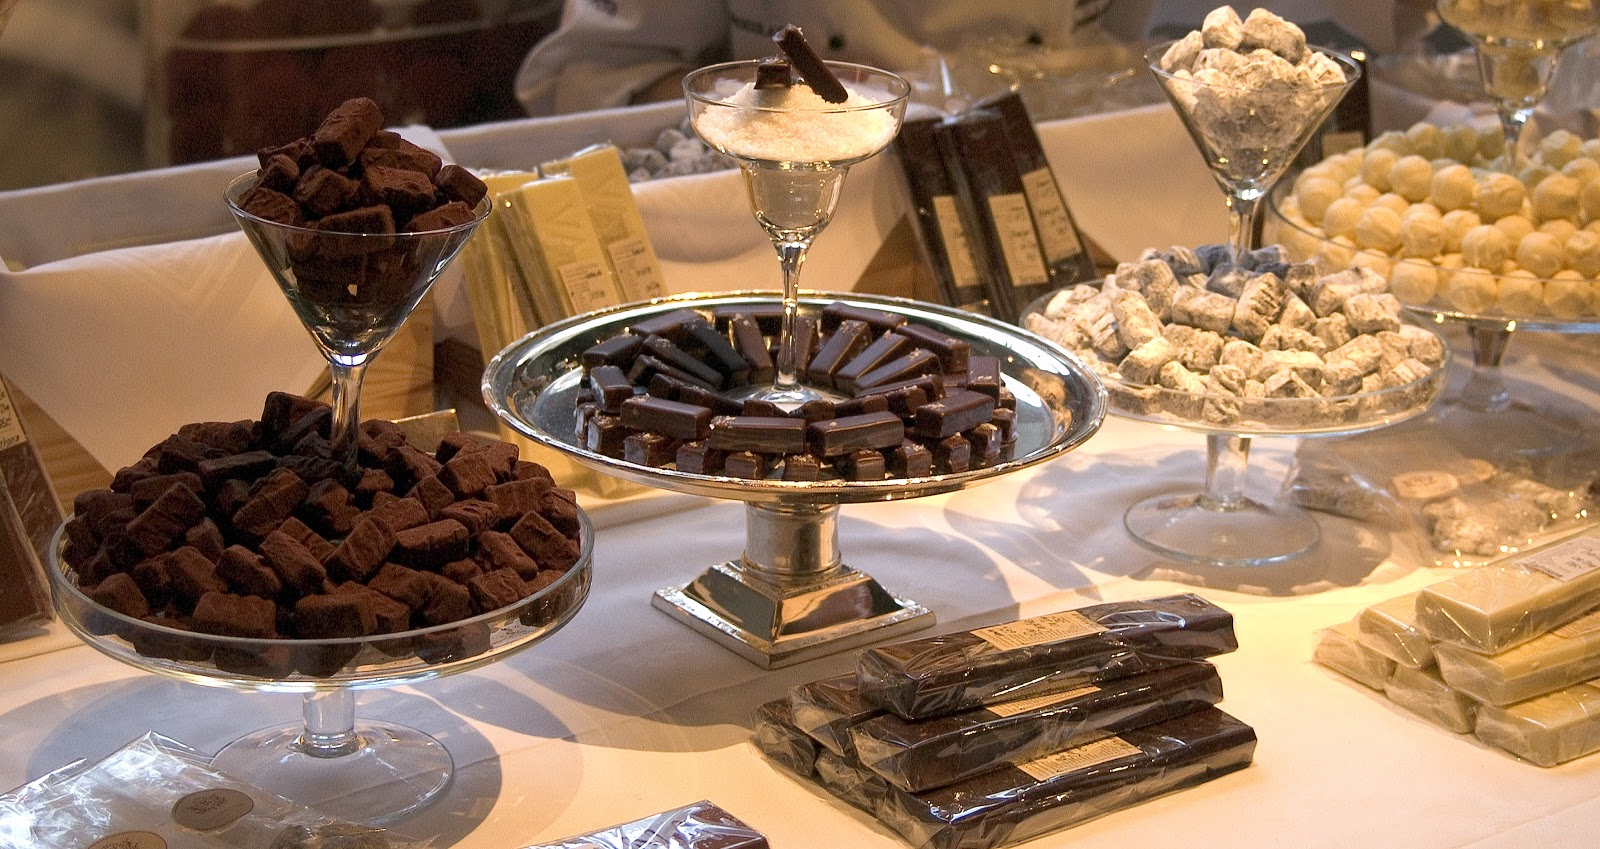 The Stockholm Tourist: Chocolate Festival This Weekend!